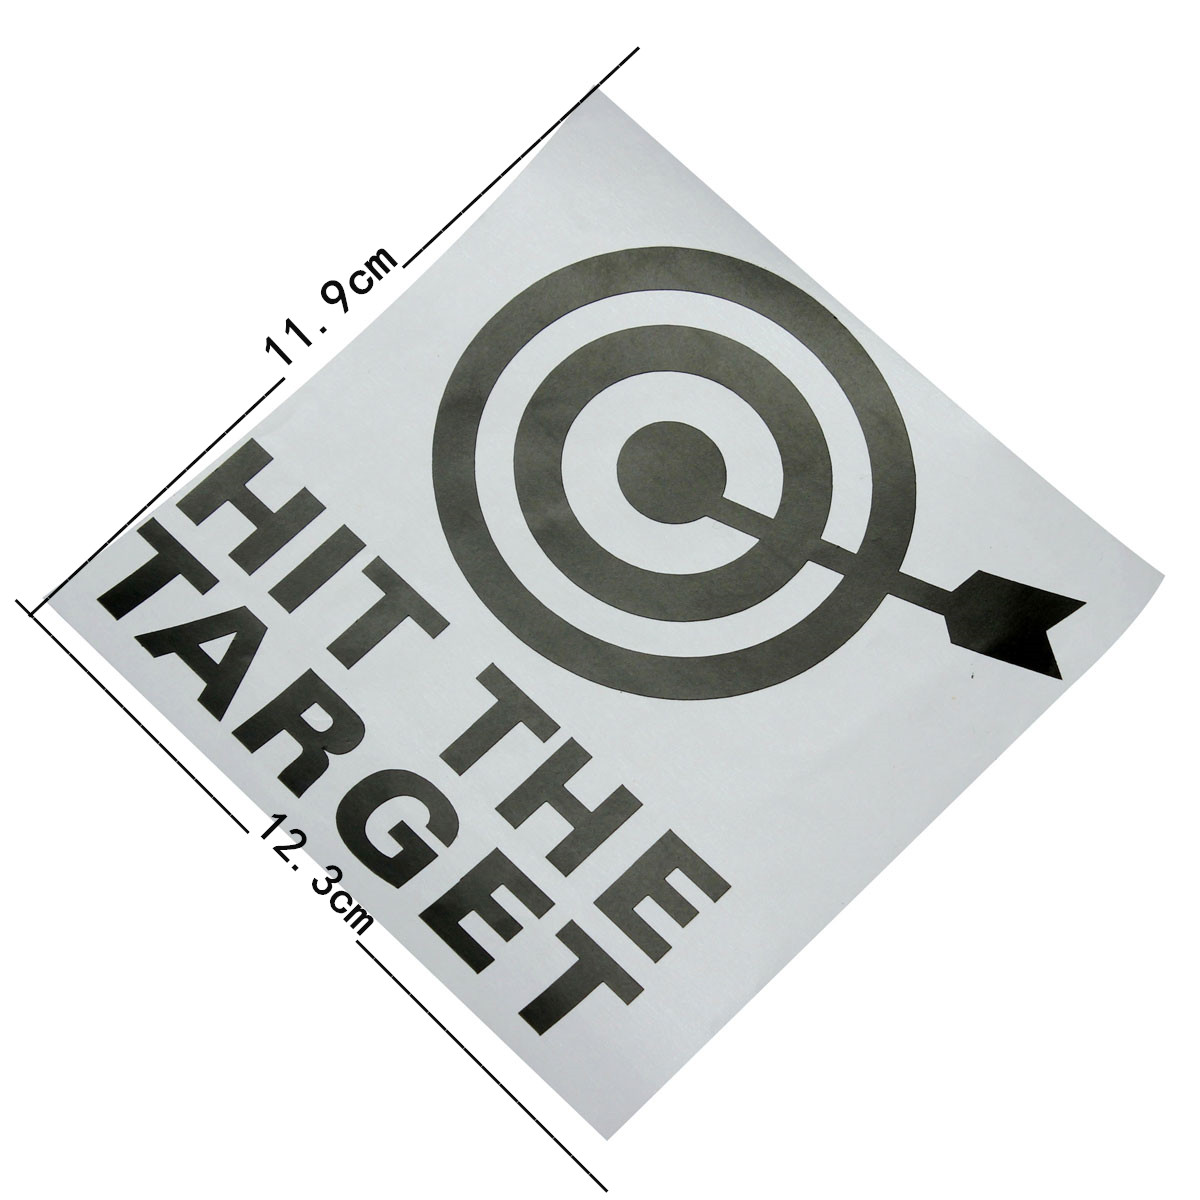 Target Toilet Seat Sticker Decals Vinyl Art Wallpaper Bathroom Decor 1200x1200